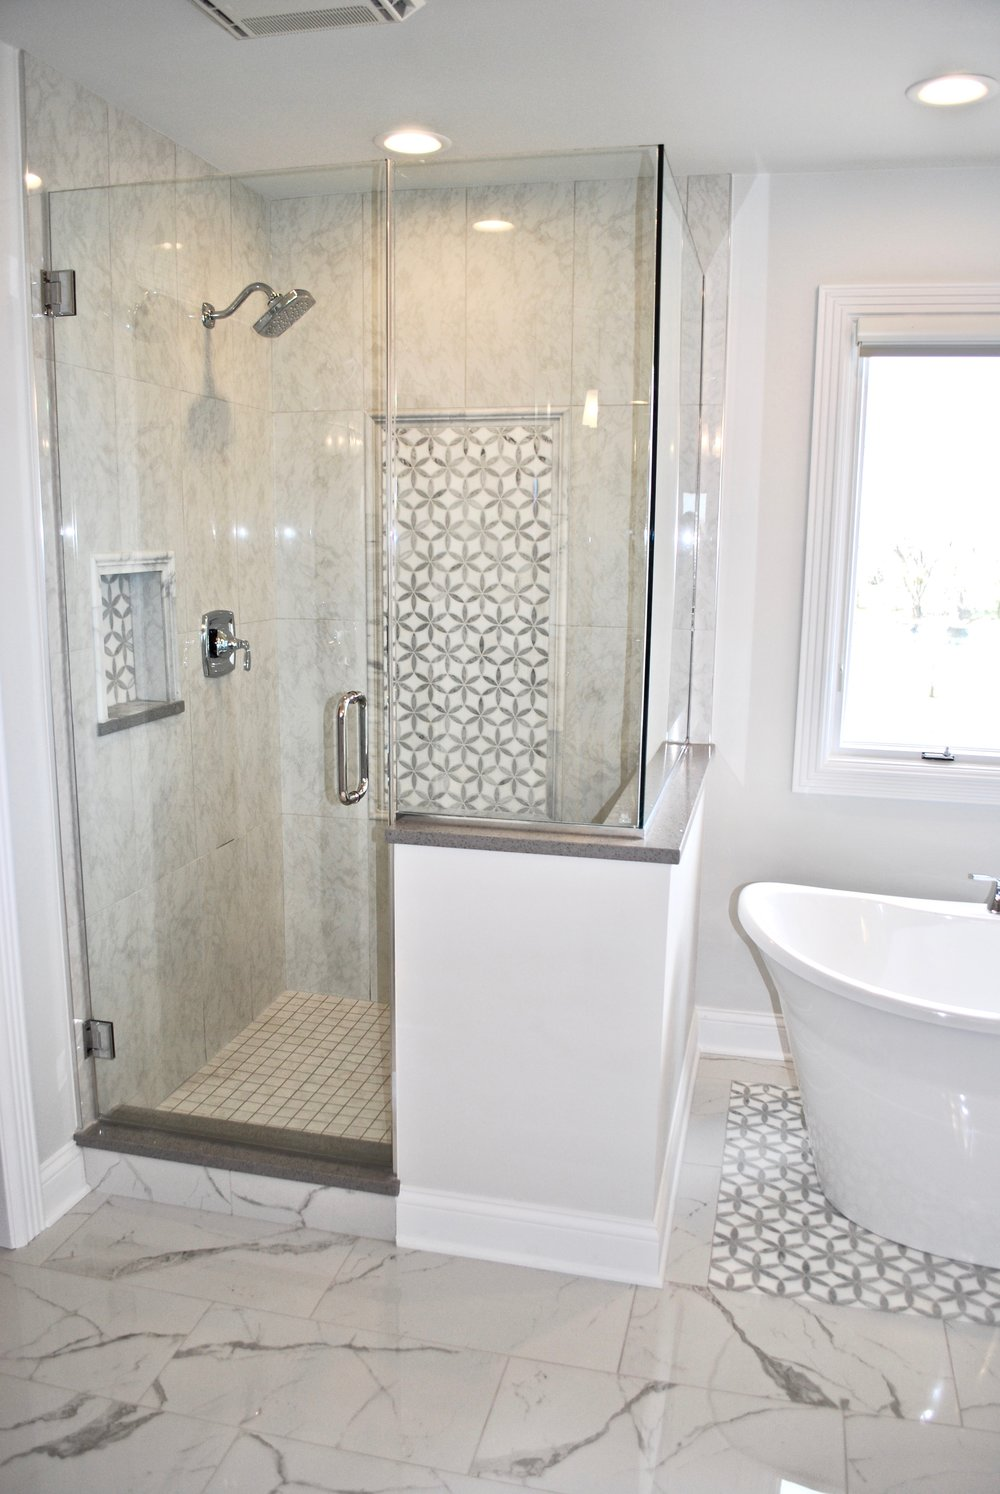 Outdated St. Charles Shower- Marble Grey Bathroom Remodel - AFTER.jpg